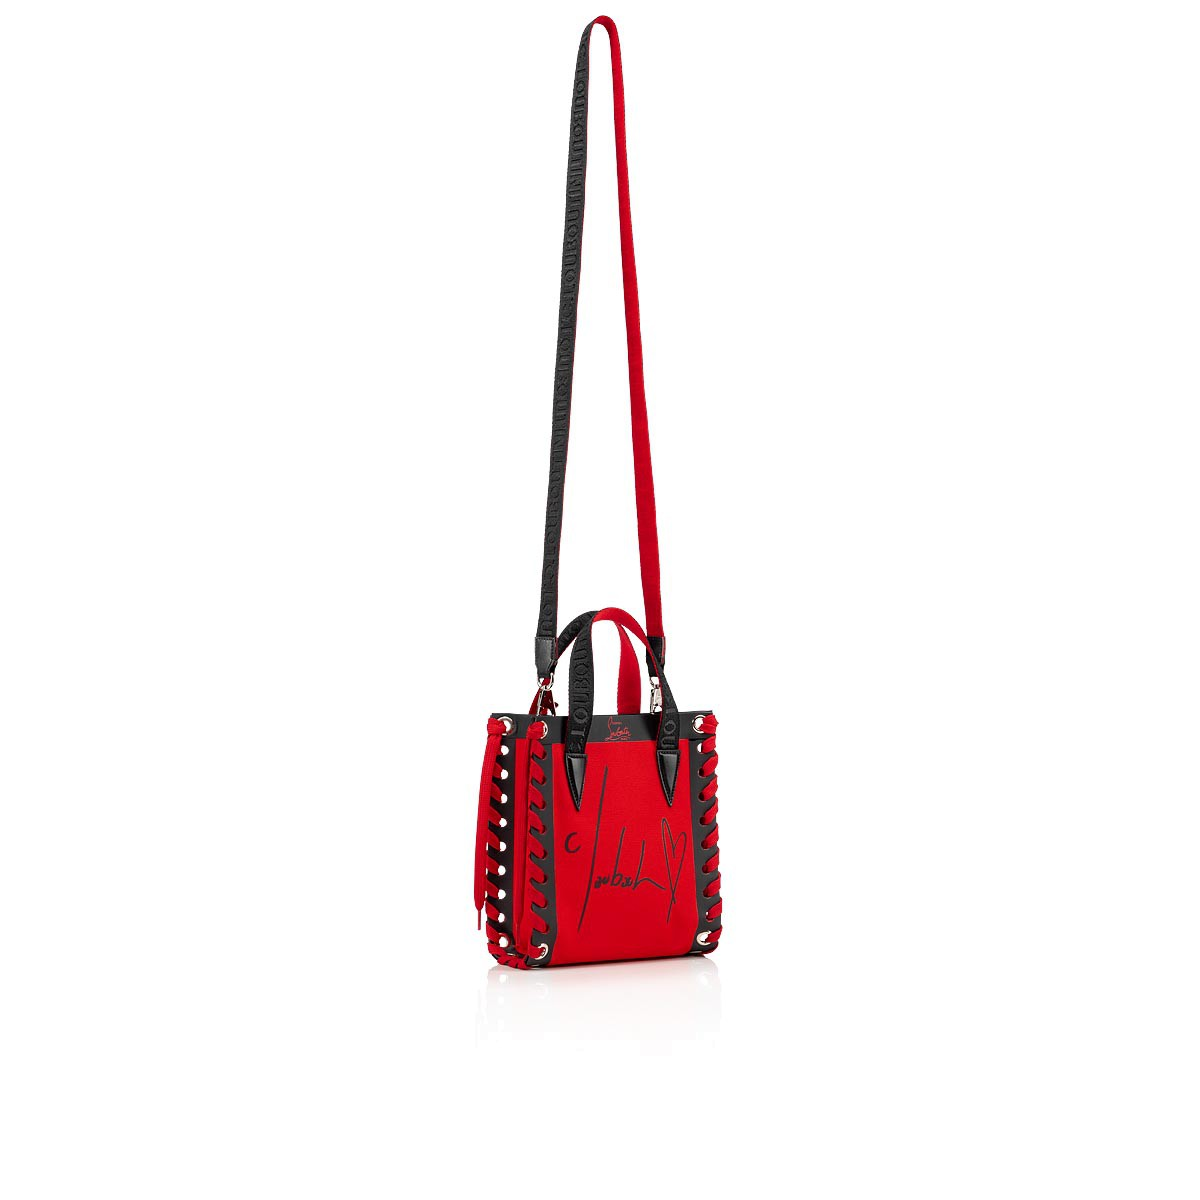 Bags - Cabalace Mini - Christian Louboutin